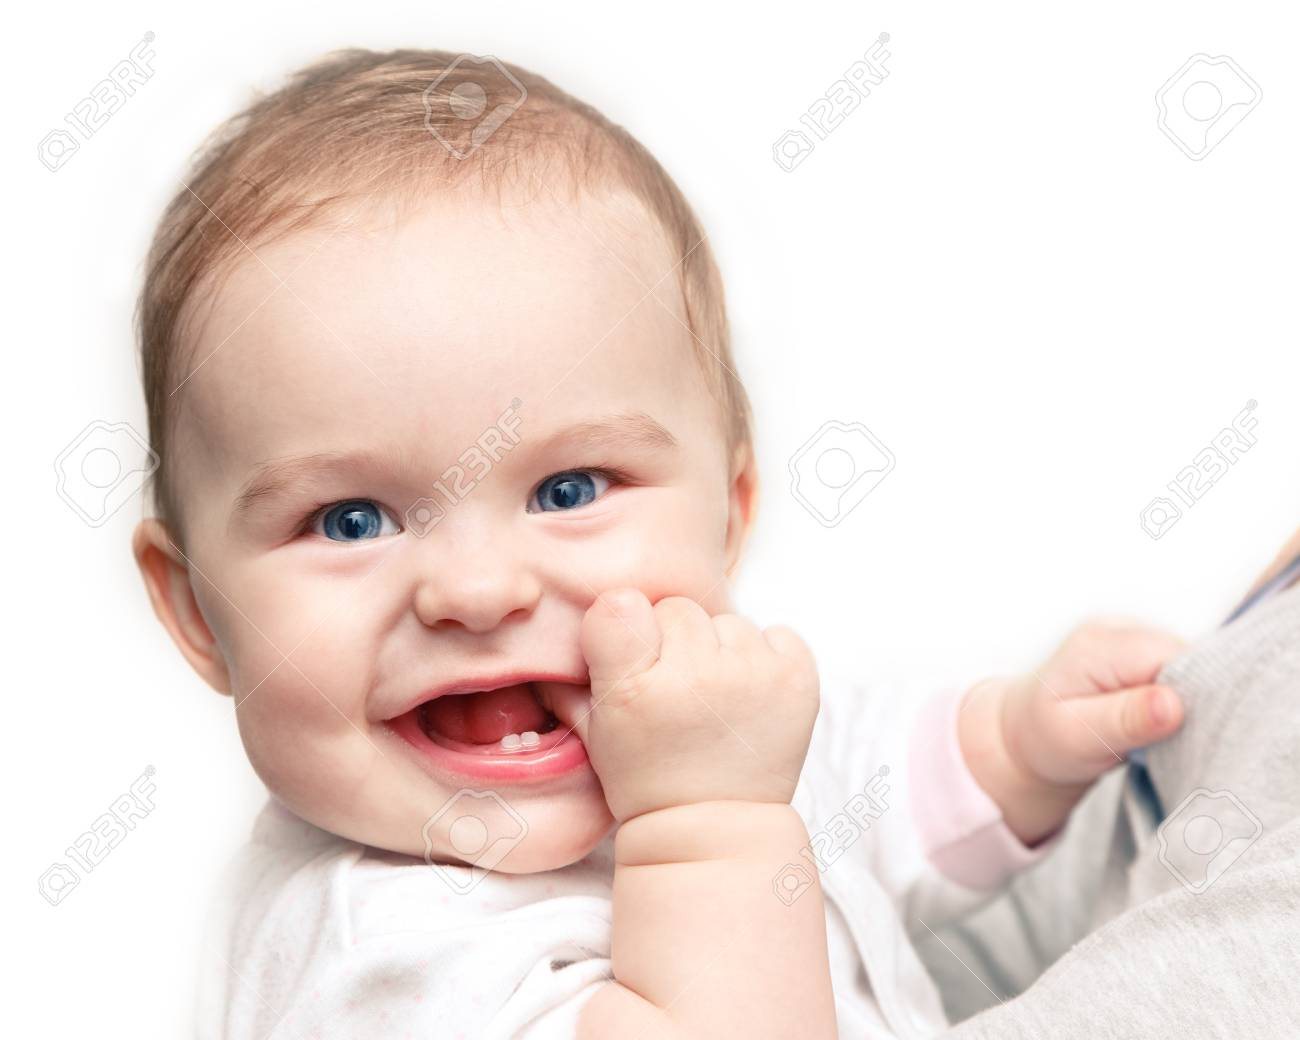 Cute smiling baby Stock Photo - 9696026